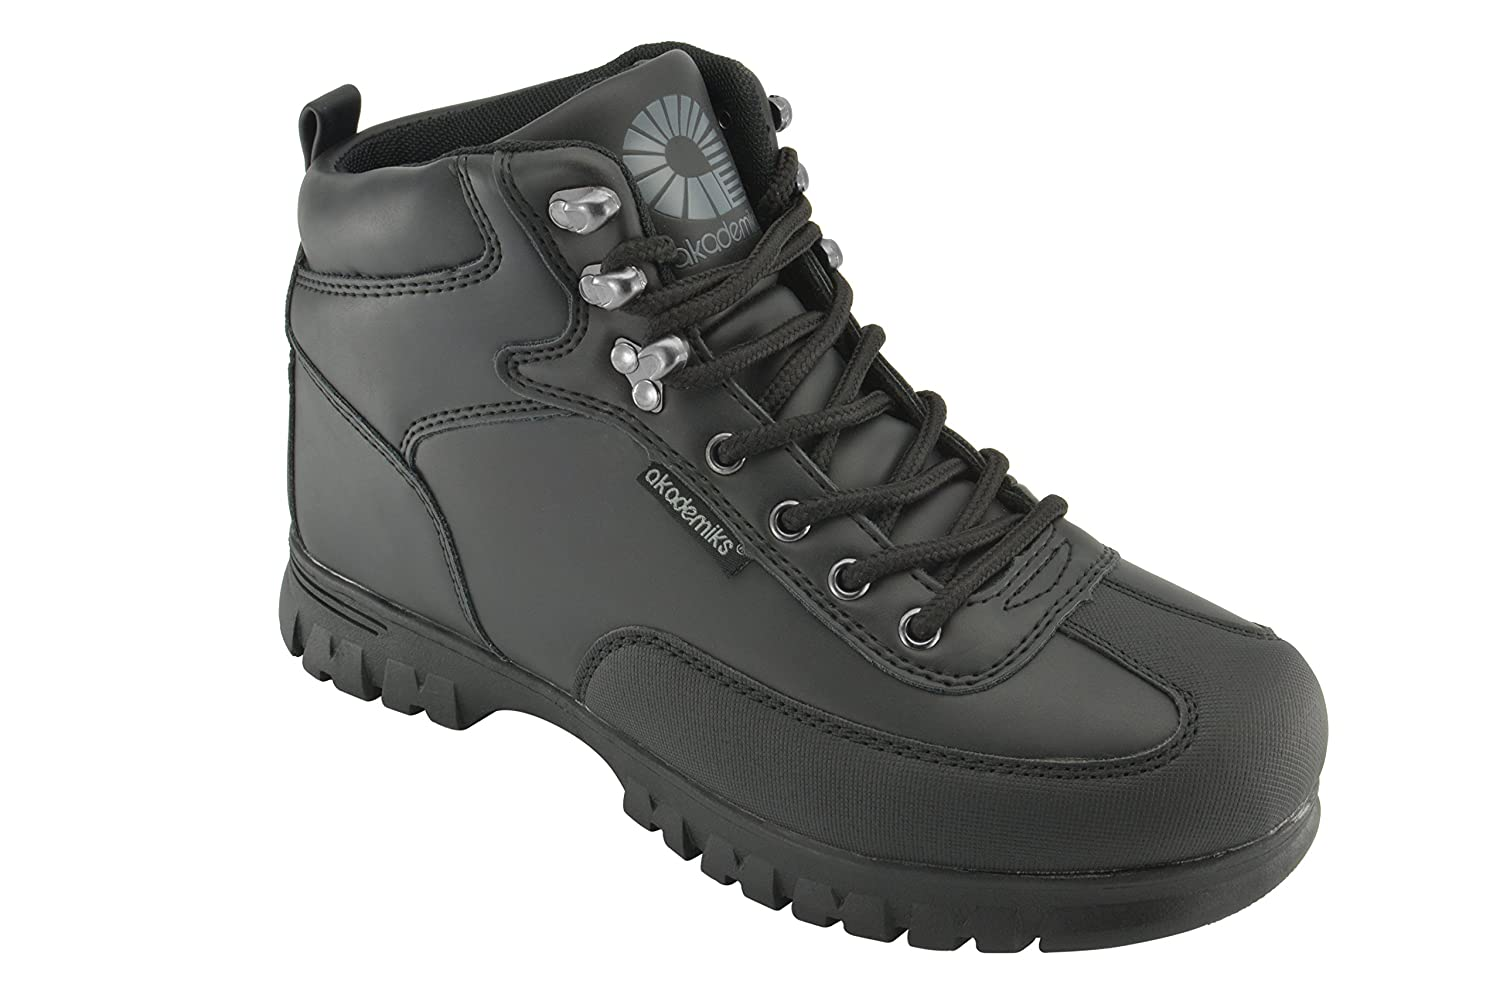 Akademiks Men's Louis-07 Hiking Boots